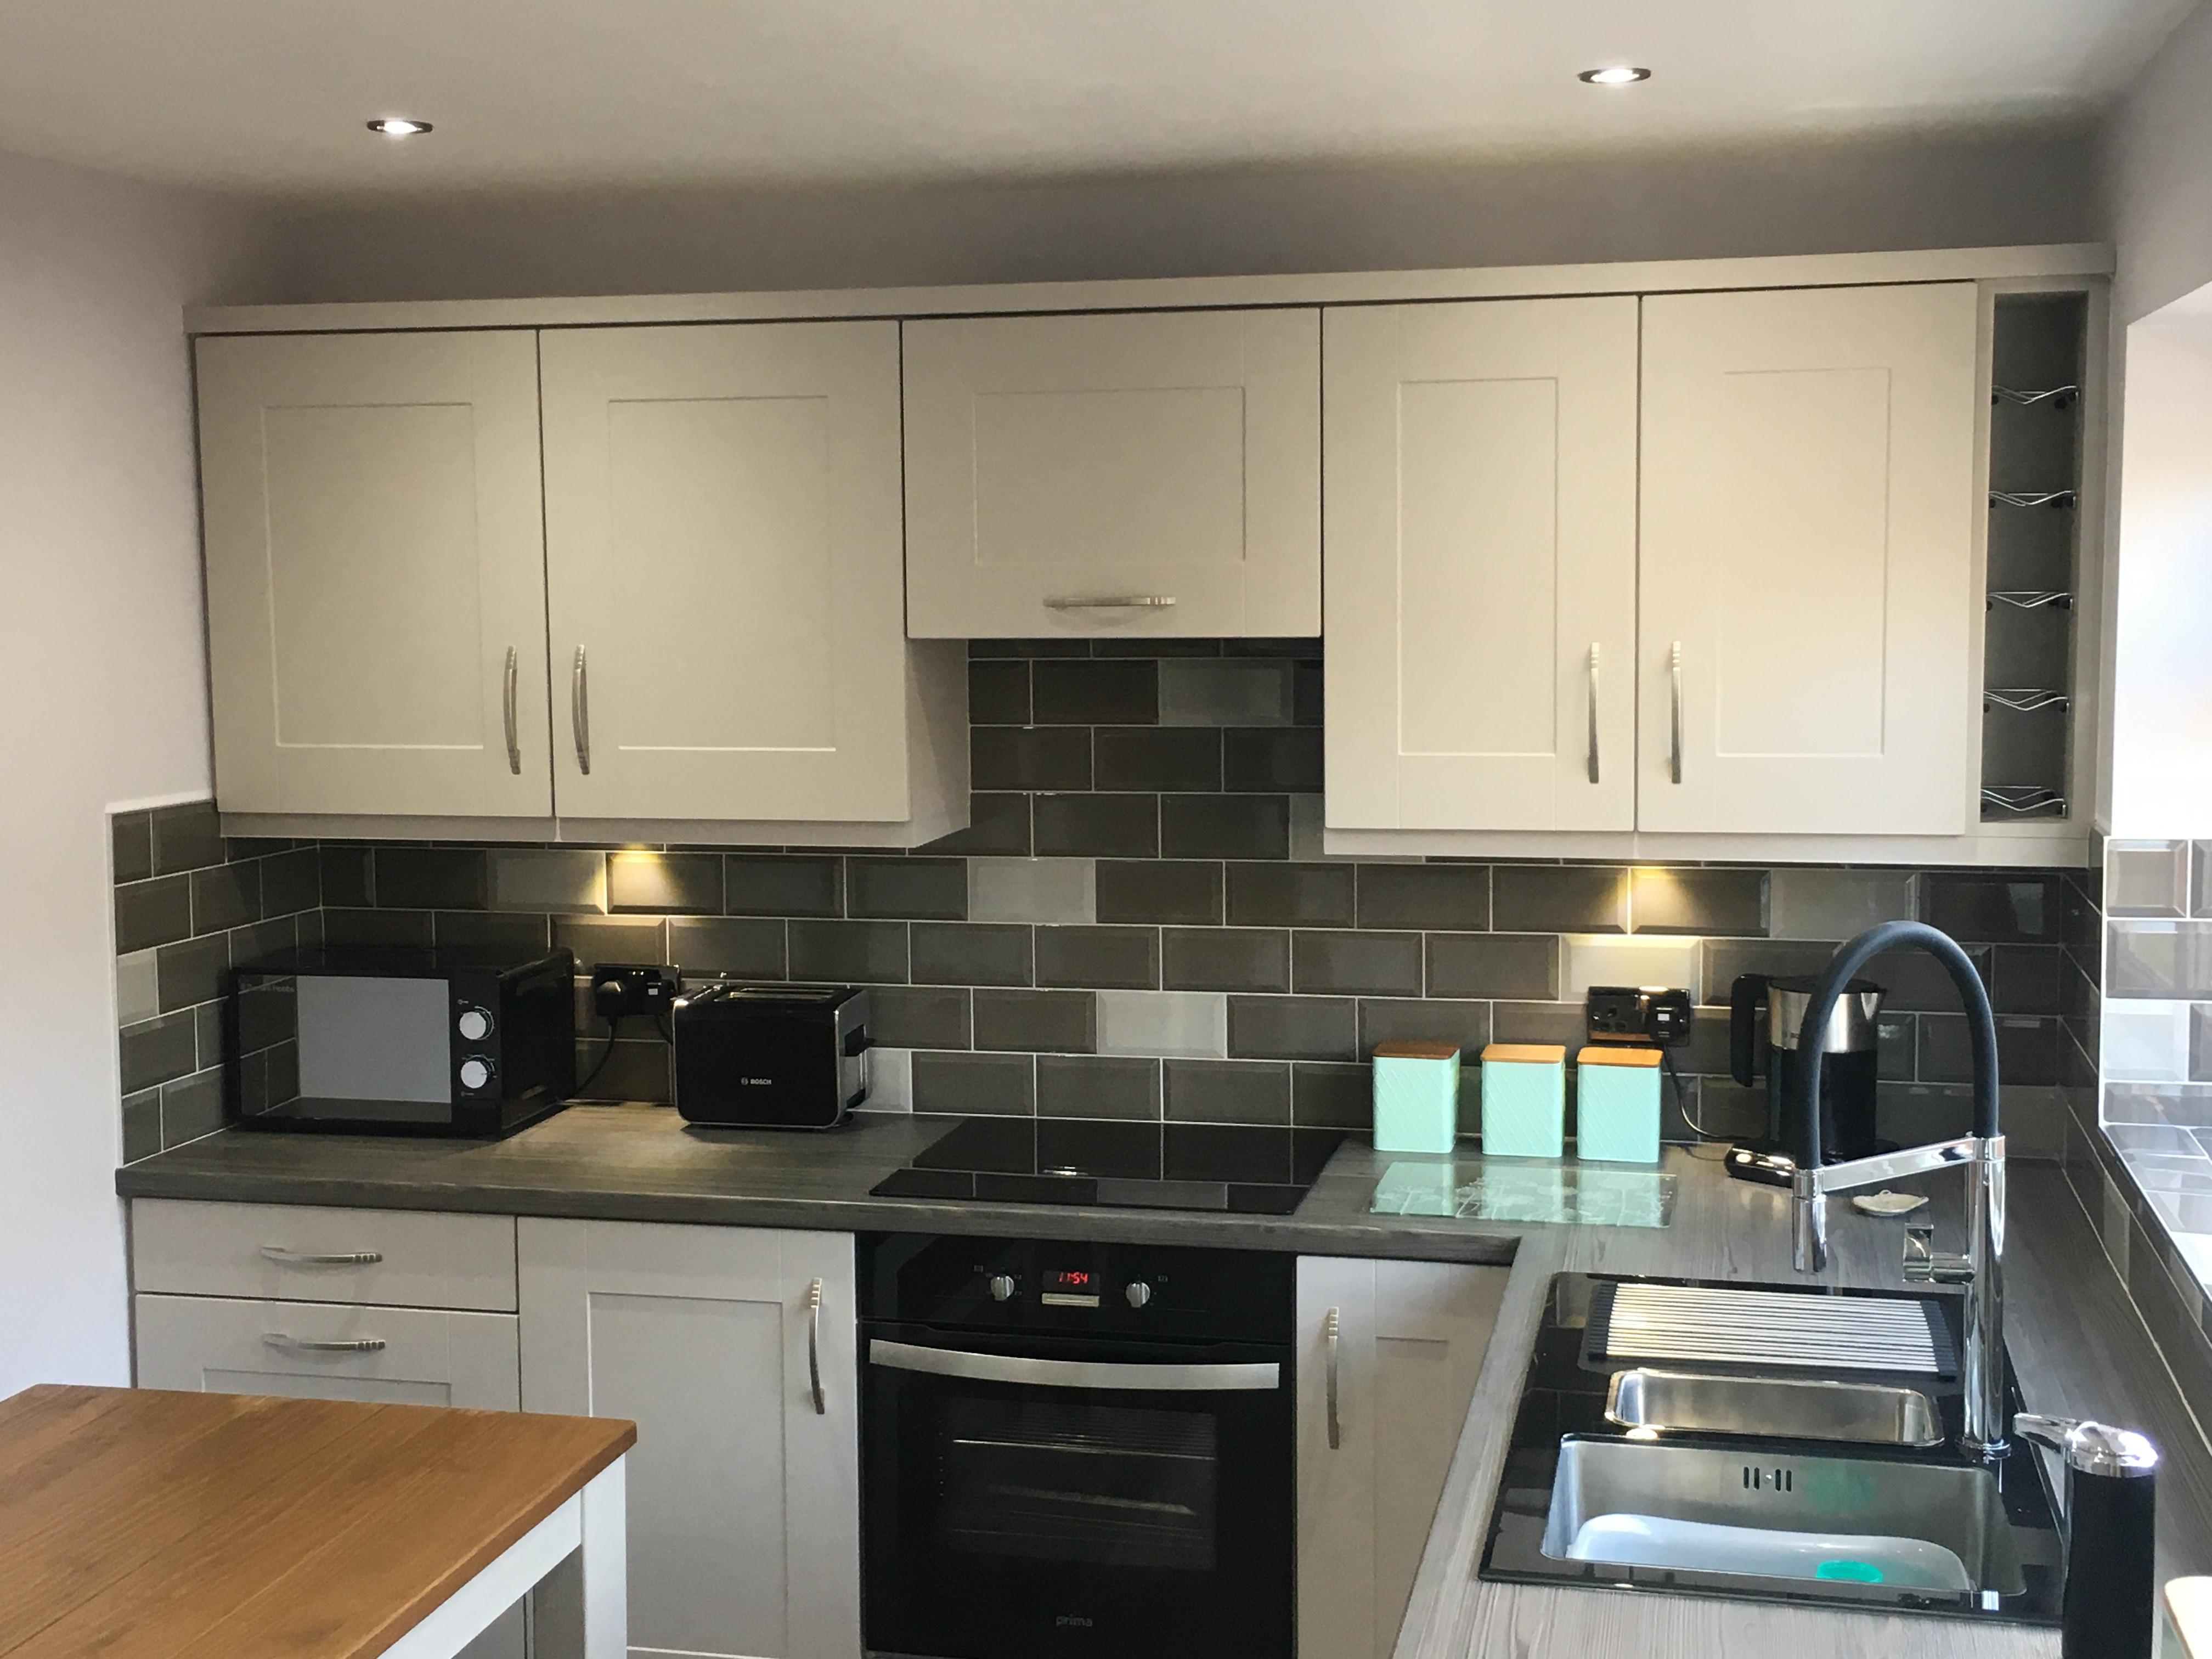 Made-to-measure kitchens Leeds | Harmony Kitchens and Bedrooms